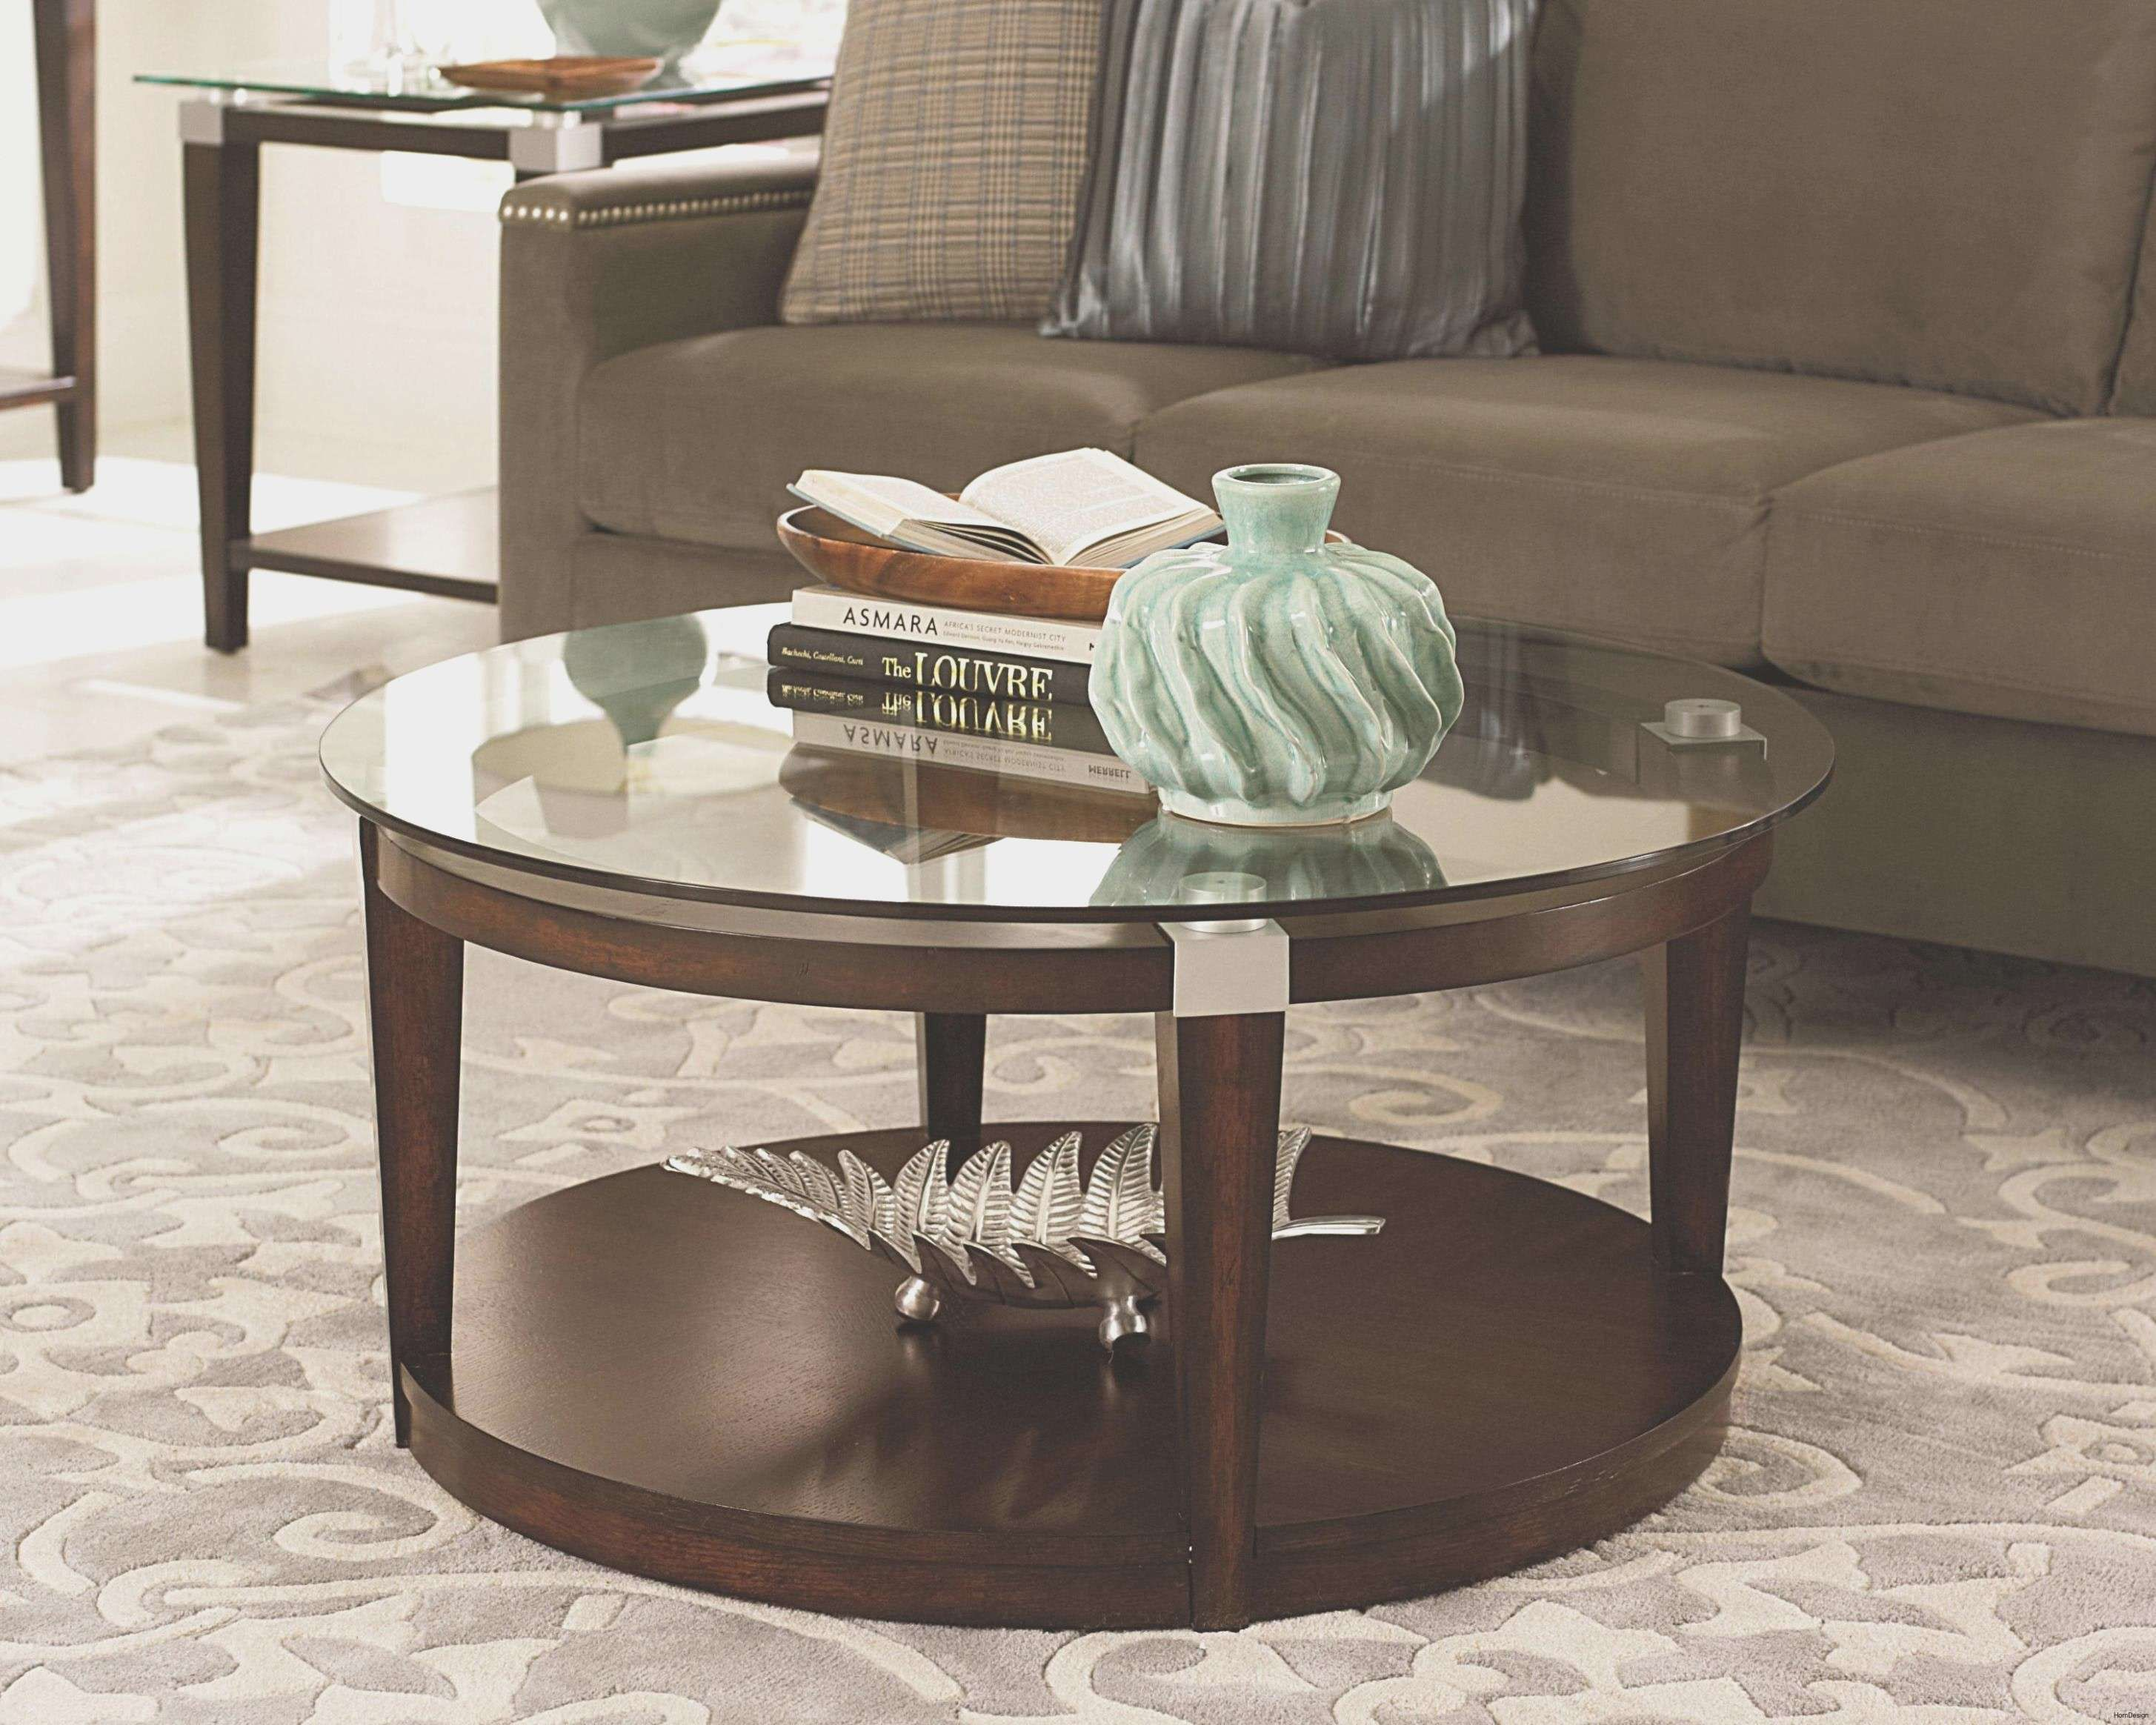 Round Coffee Table Decor Ideas Collection Amazing Small Circular Coffee Table With Home Desig In 2020 Round Coffee Table Decor Round Coffee Table Coffee Table Design